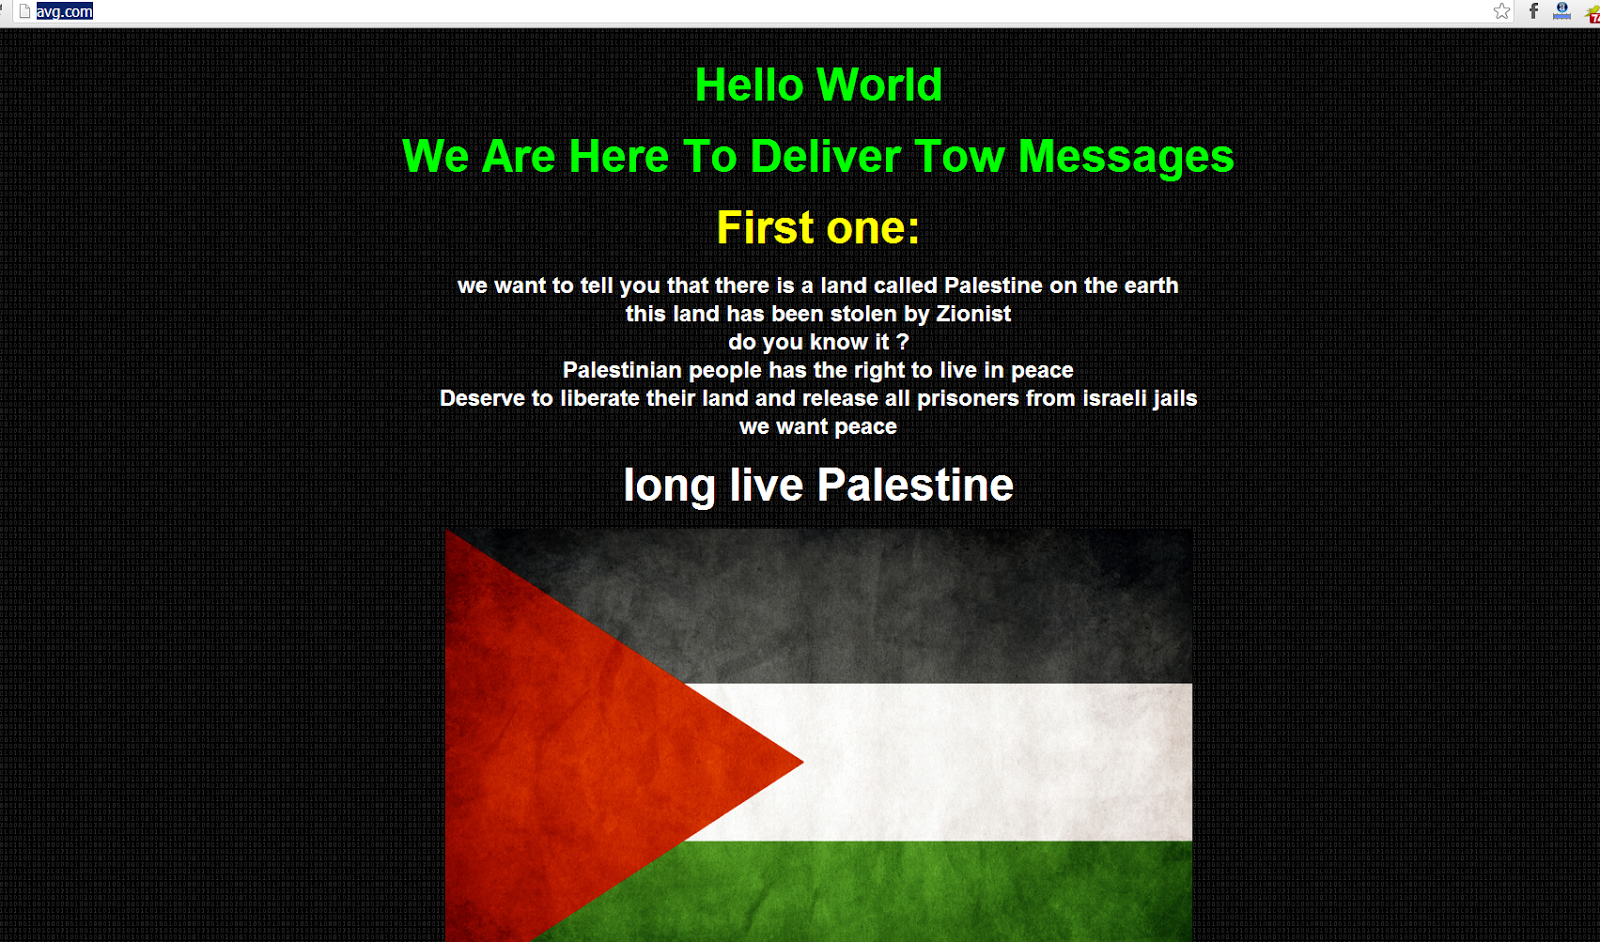 Whatsapp and AVG Antivirus Firm Websites defaced by Palestinian Hackers